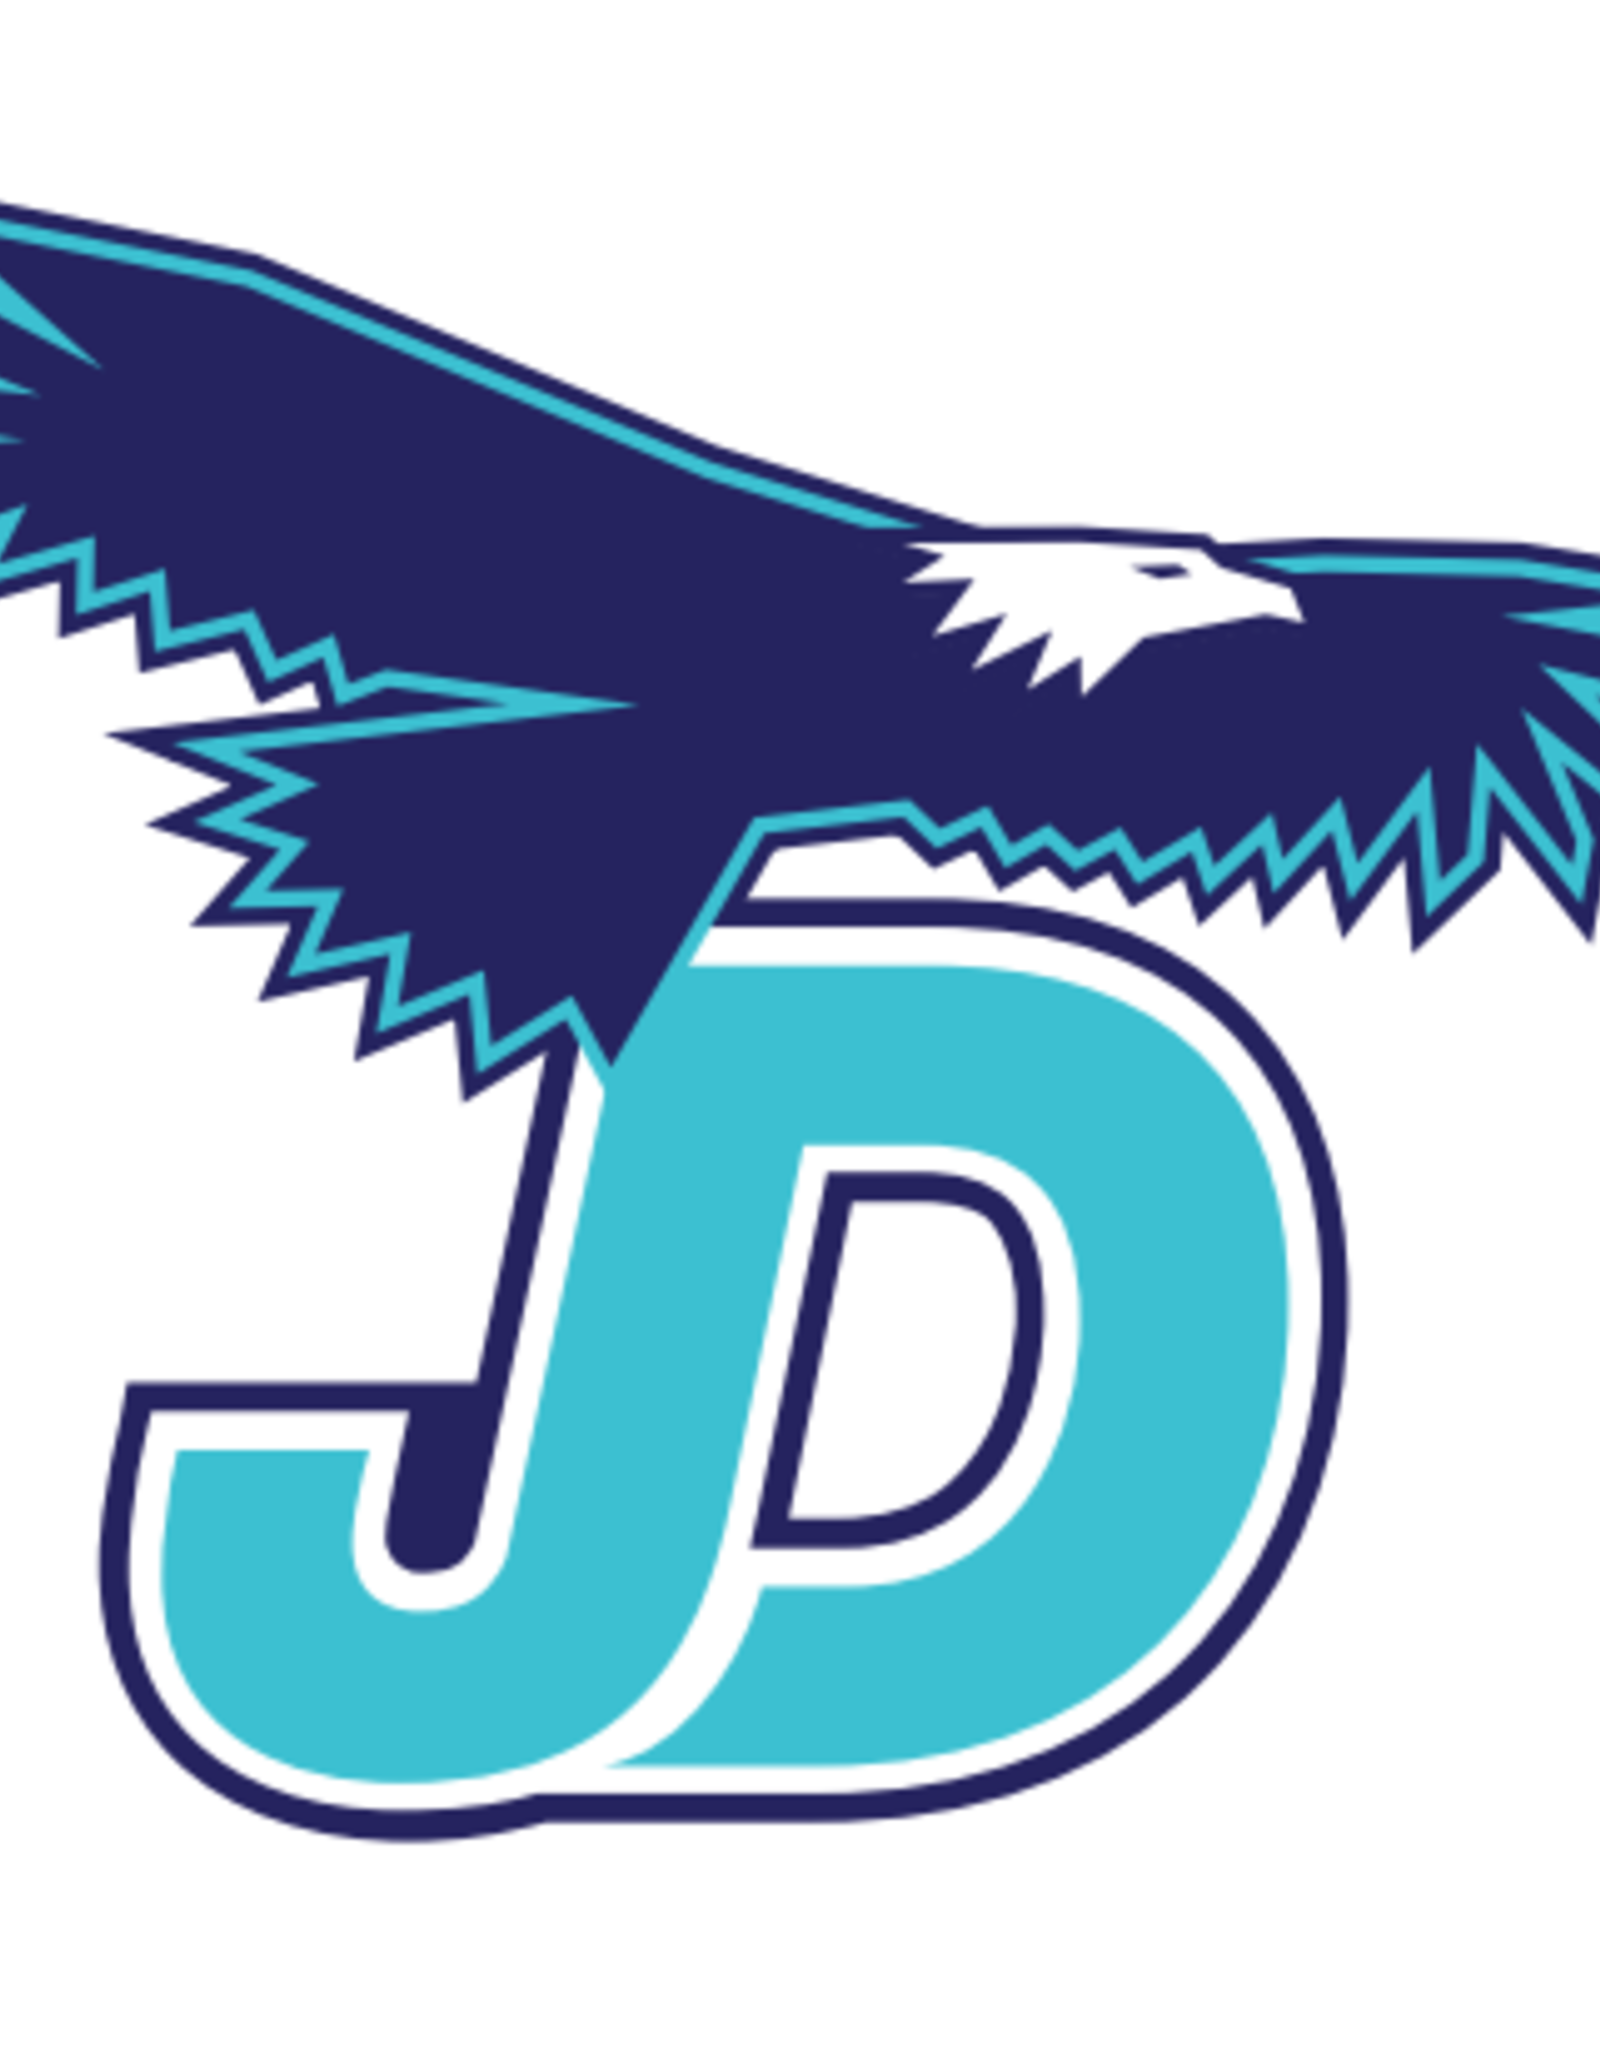 NON-UNIFORM Juan Diego Large Decal, navy/white/teal